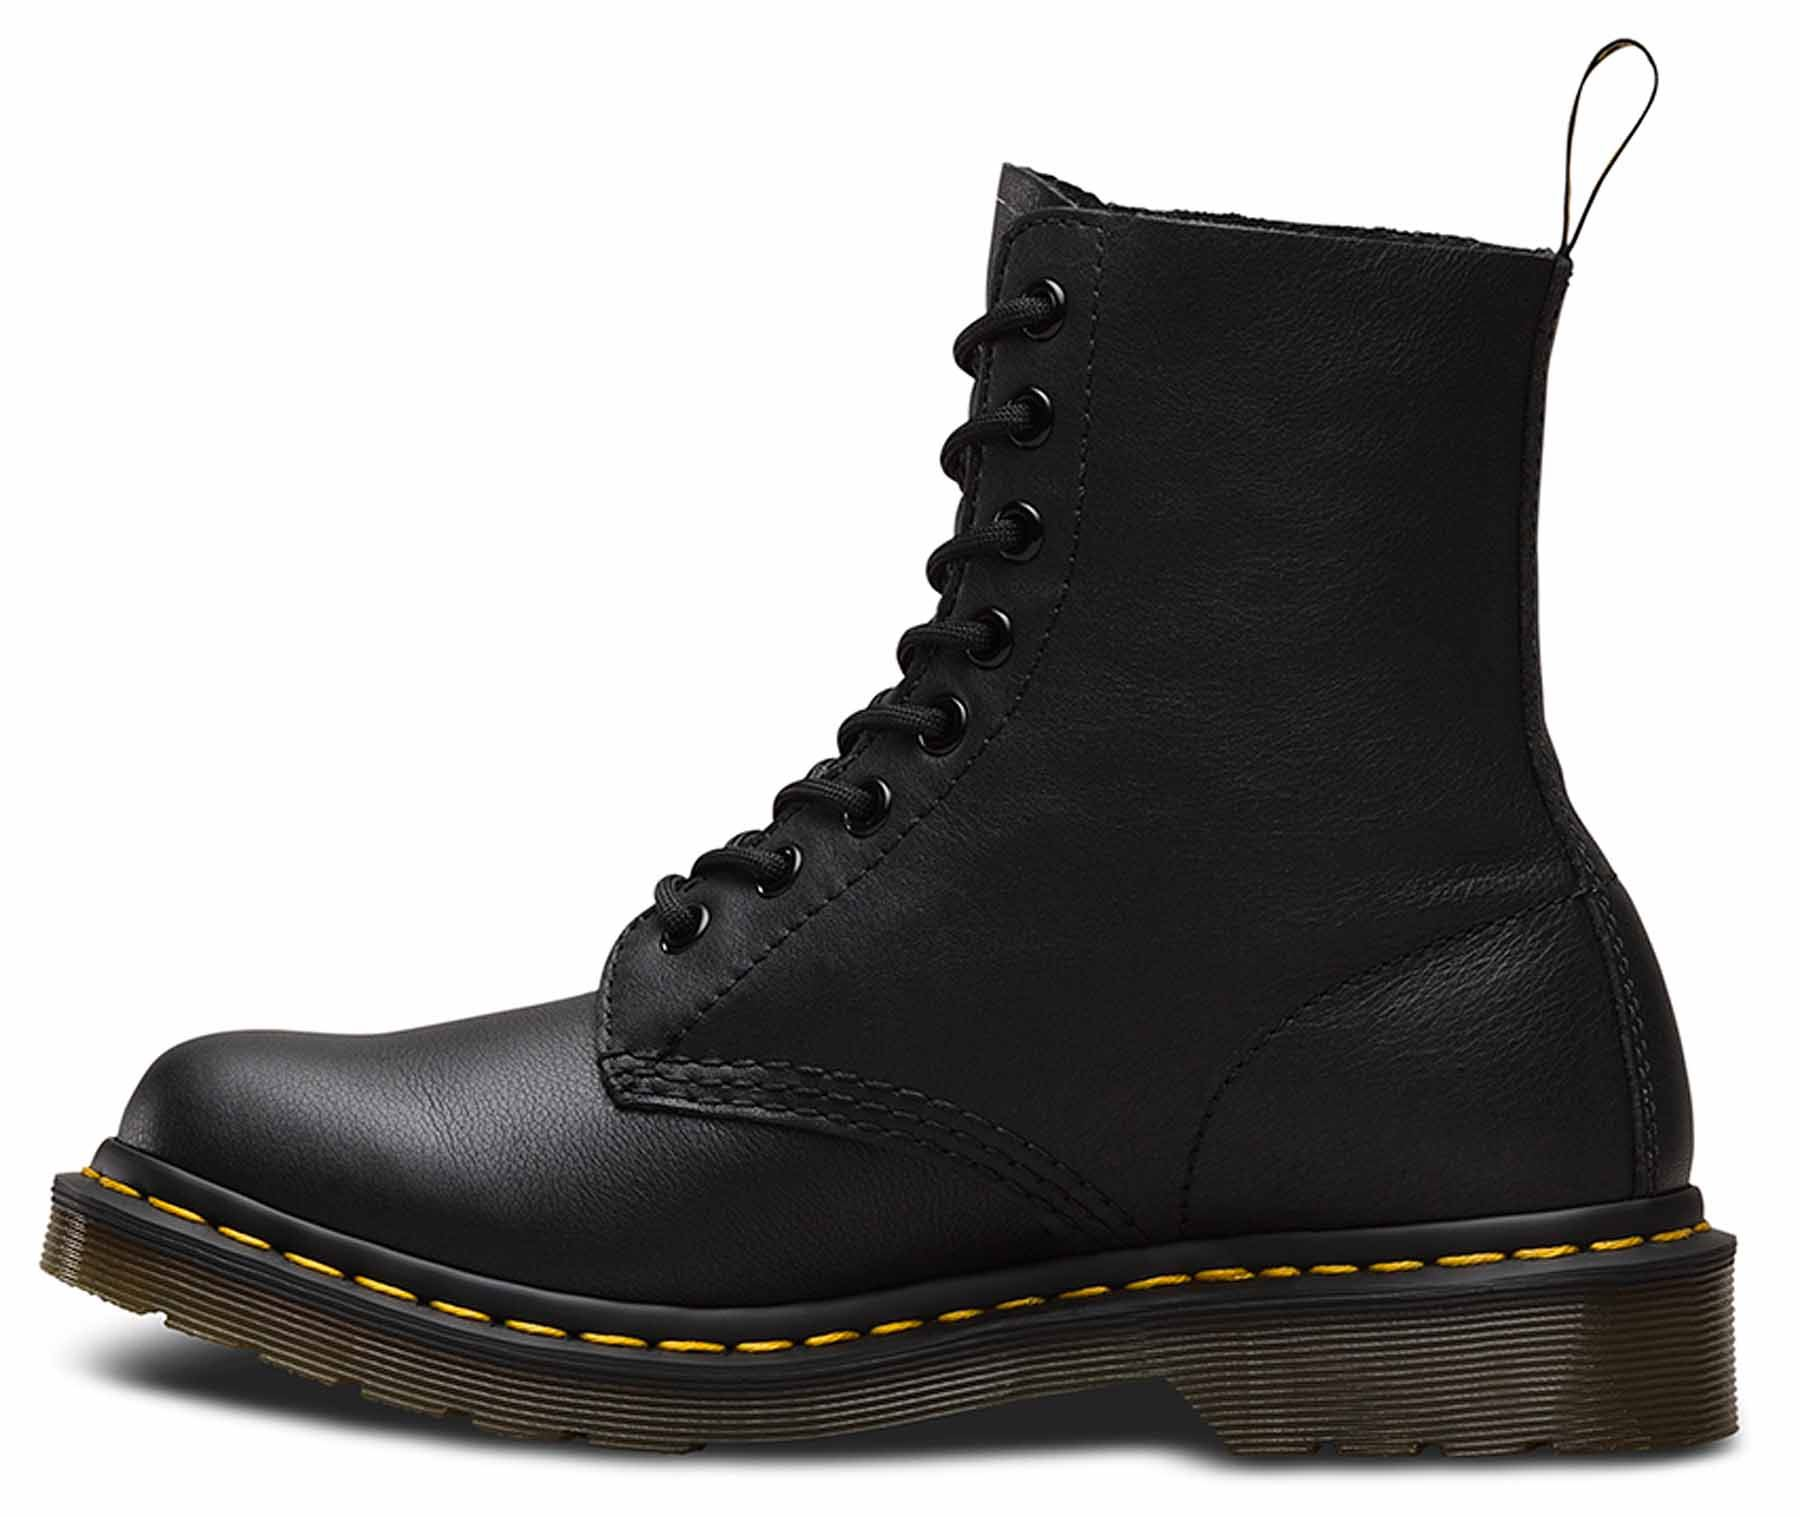 8c0557d32f8 Details about Dr Martens Ladies Pascal Virginia Soft Nappa Leather 8 Eye  1460 Ankle Boots